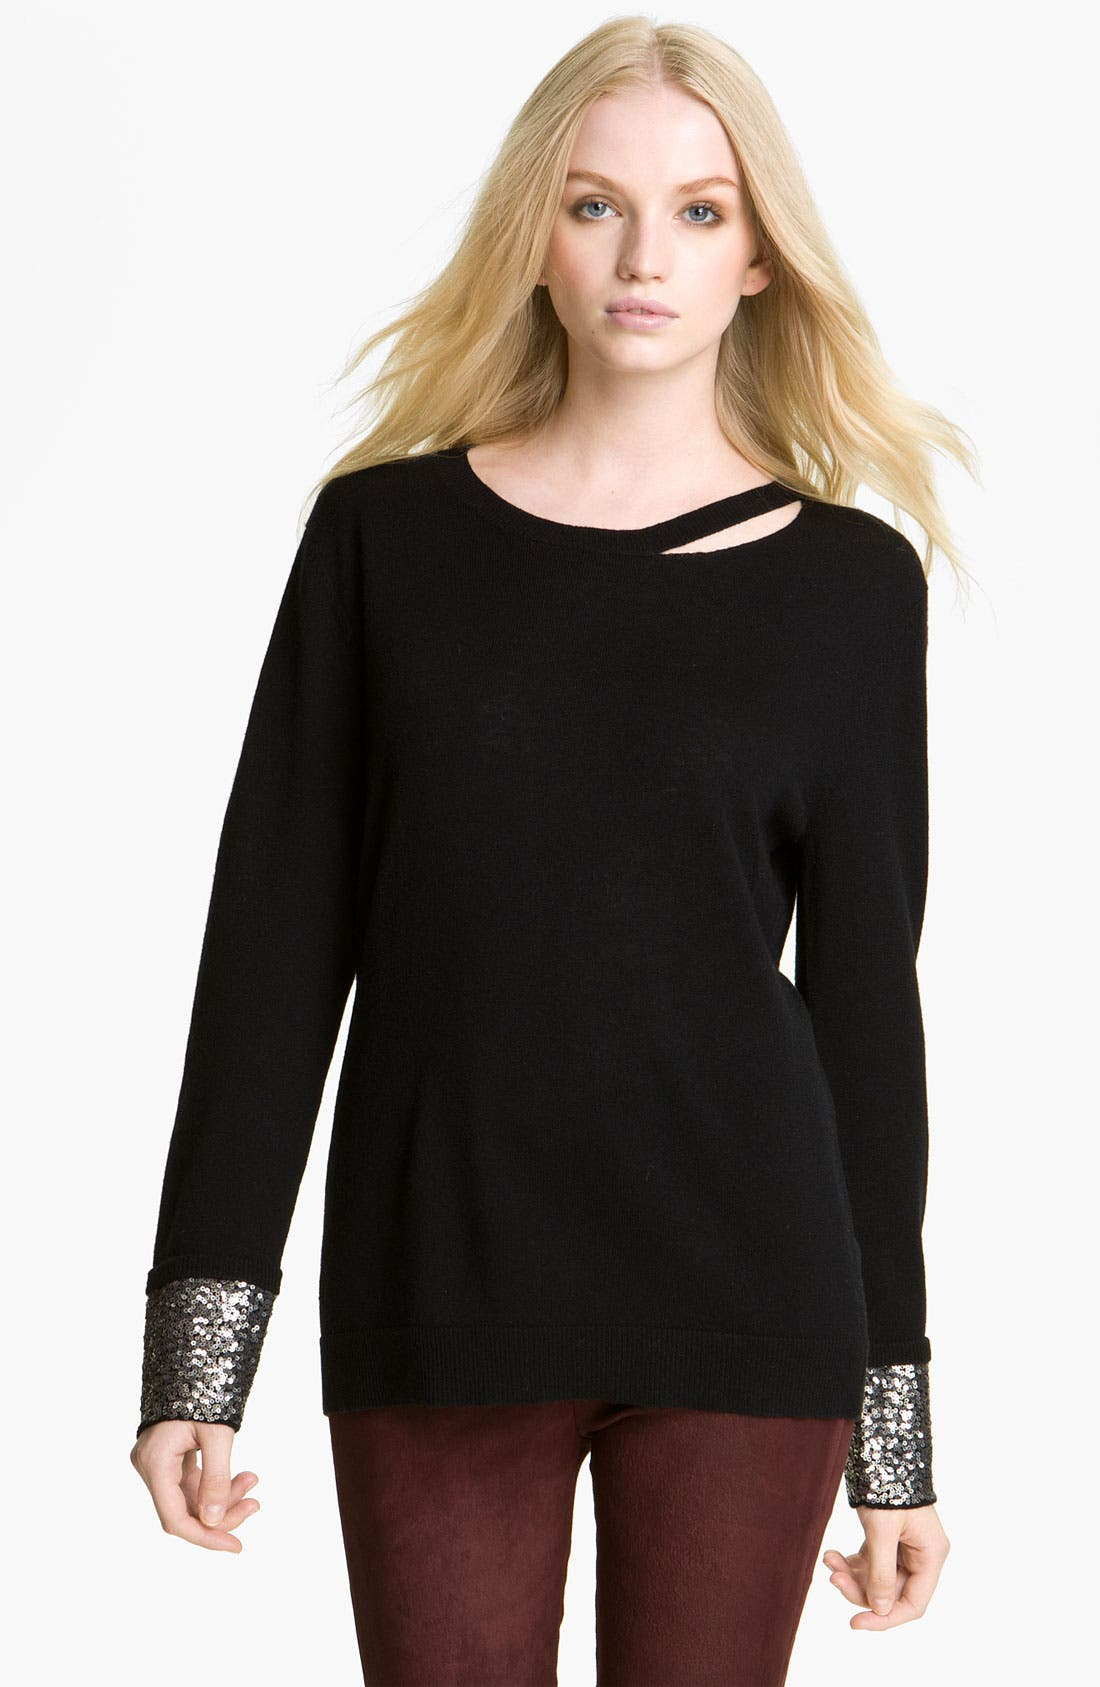 Main Image - Zadig & Voltaire 'Cygne' Sequin Cuff Sweater